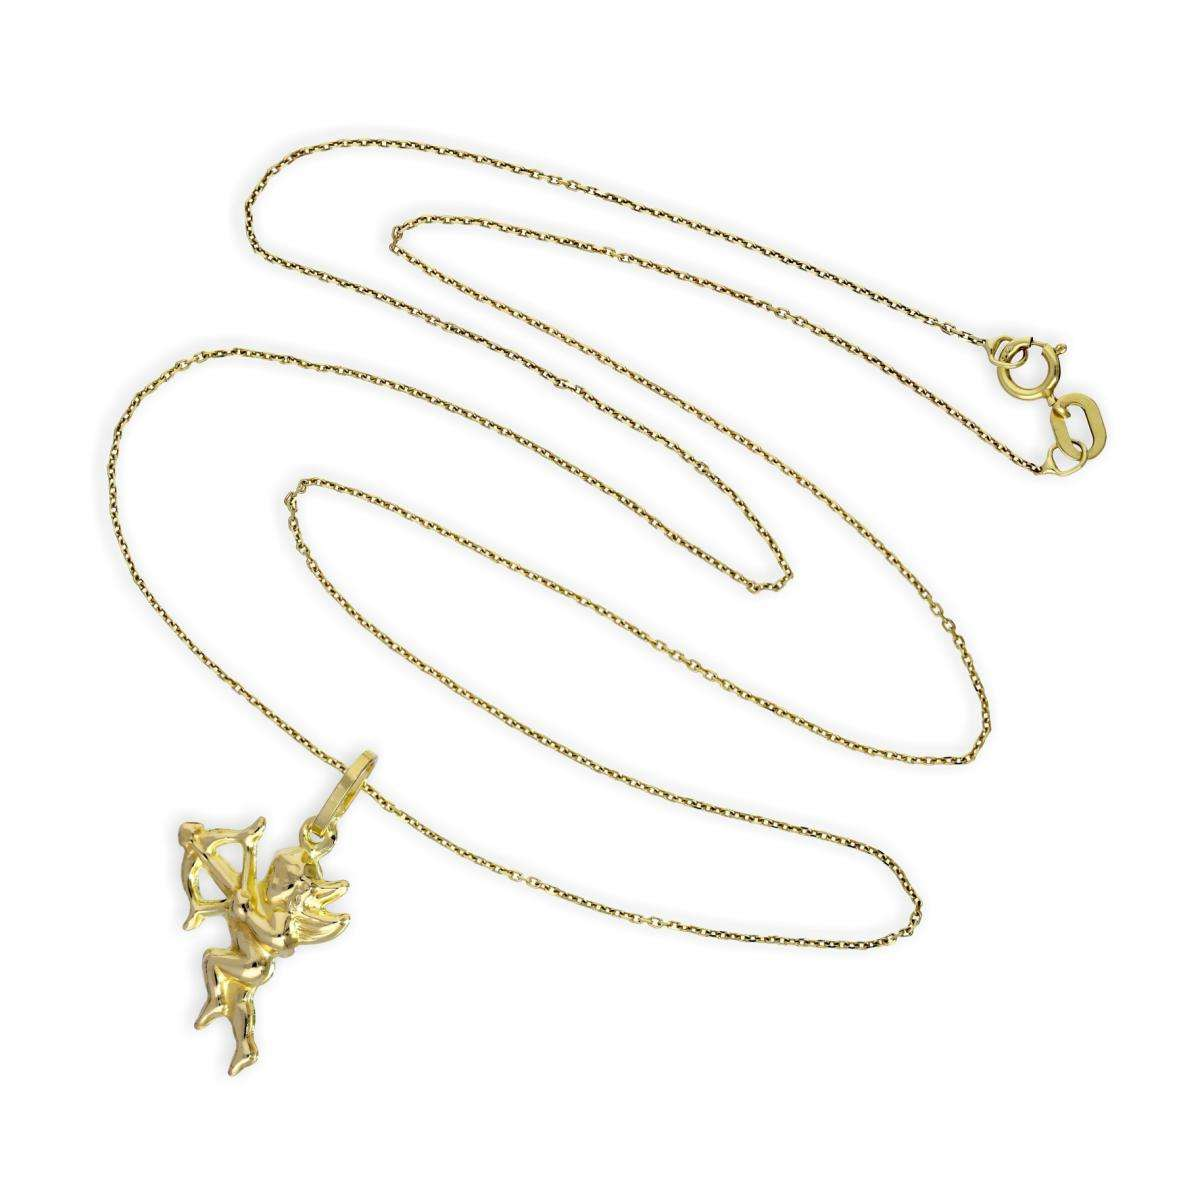 Alterative image for 9ct Gold Cupid Angel Pendant Necklace Necklace 16 - 20 Inches